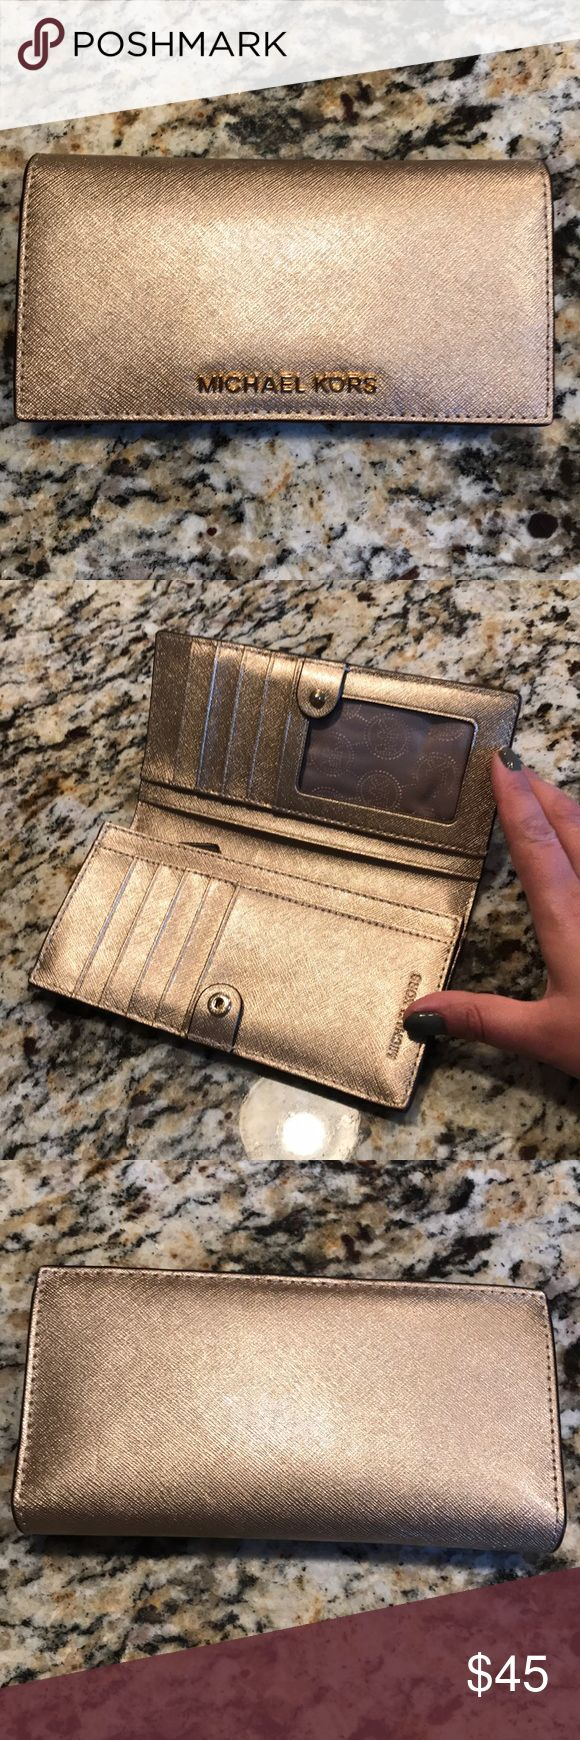 [Michael Kors] Jet Set Slim Wallet Michael Kors wallet - jet set slim in gold - gorgeous color! Used - but - No rips or stains, all stitching is intact! Hard to find one of these wallets in such good condition! Michael Kors Bags Wallets